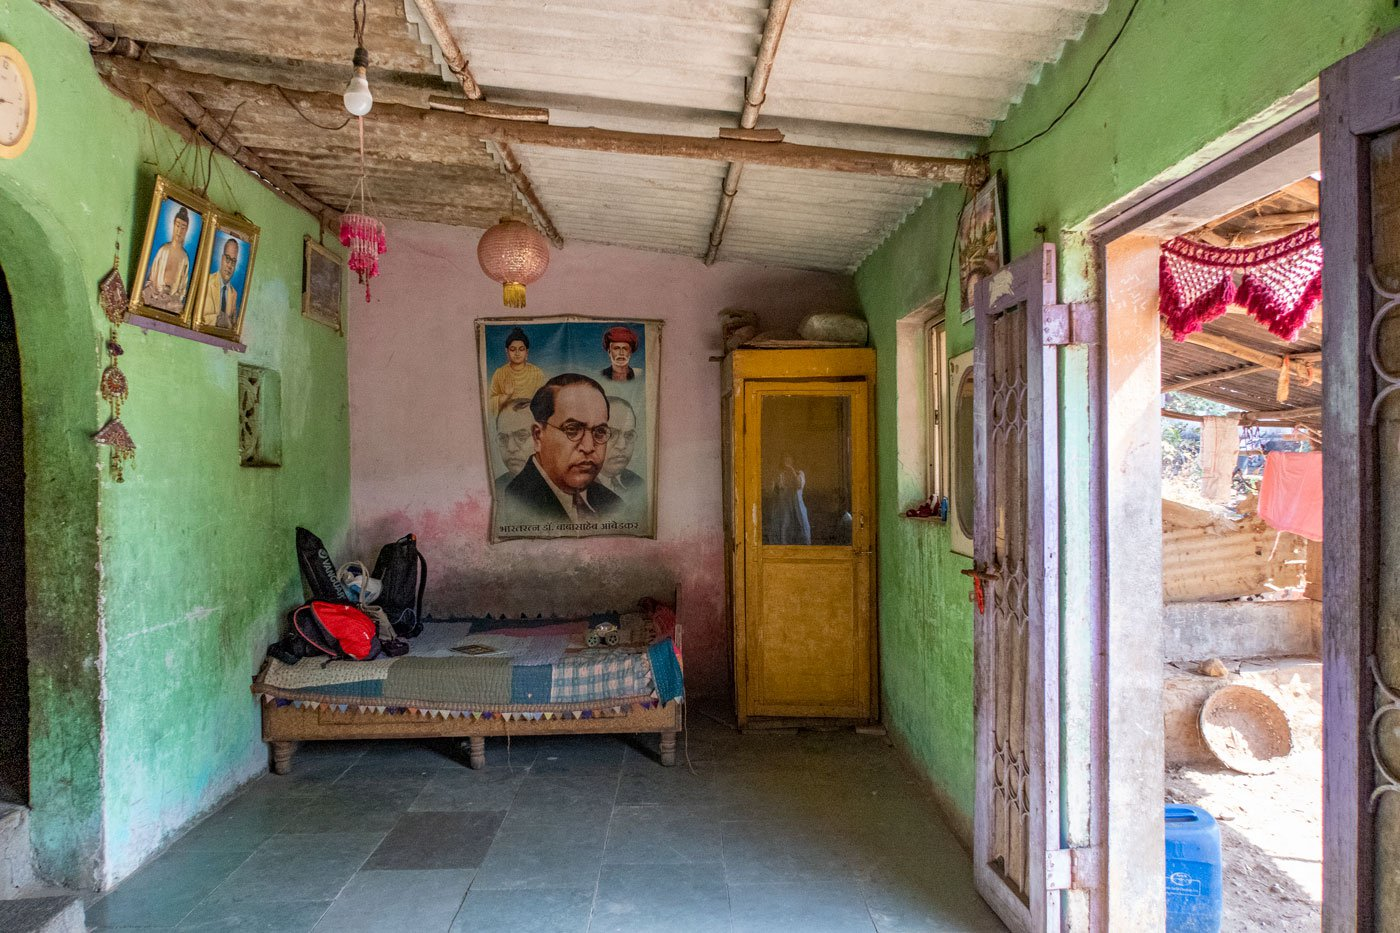 The walls of Kusum Sonawane's home in Nandgaon shows the family's reverence for Babasaheb Ambedkar